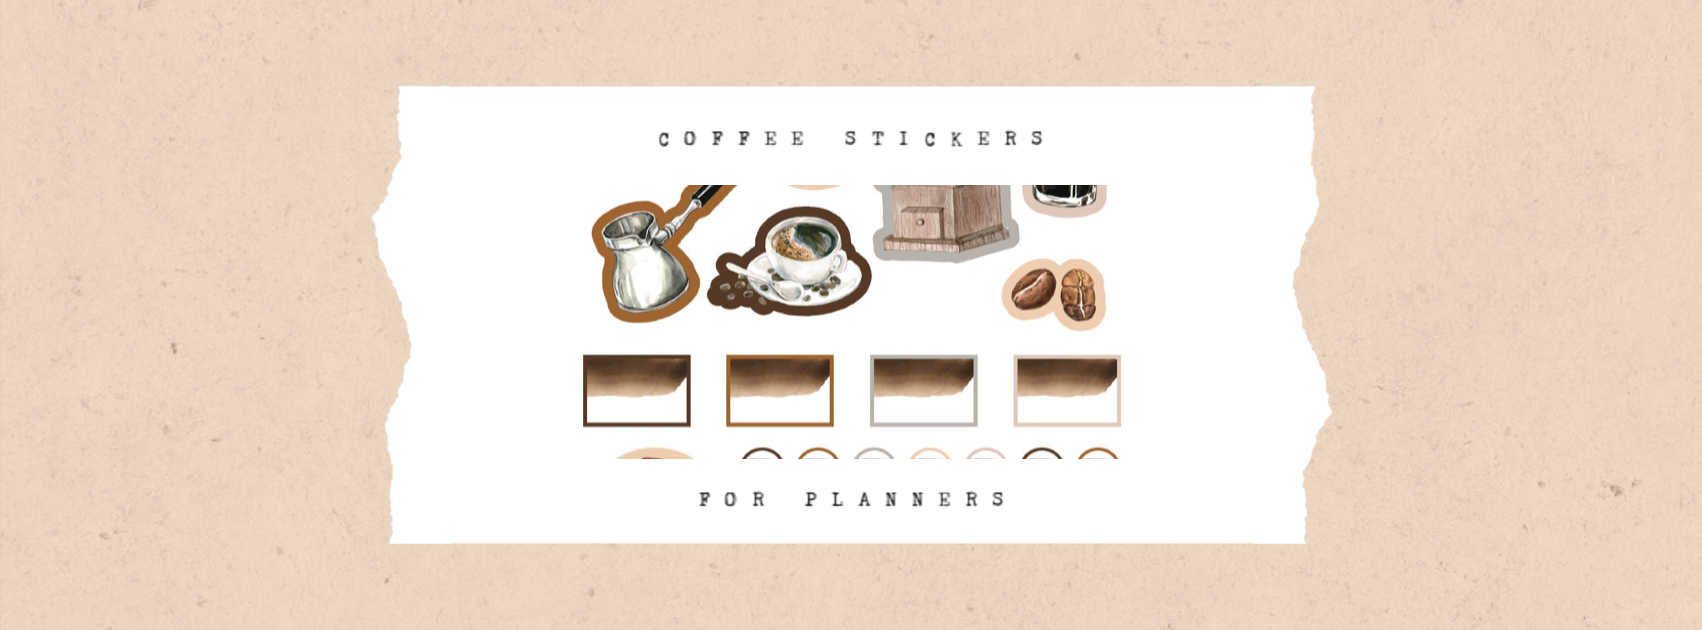 coffee stickers for planners on a tan background